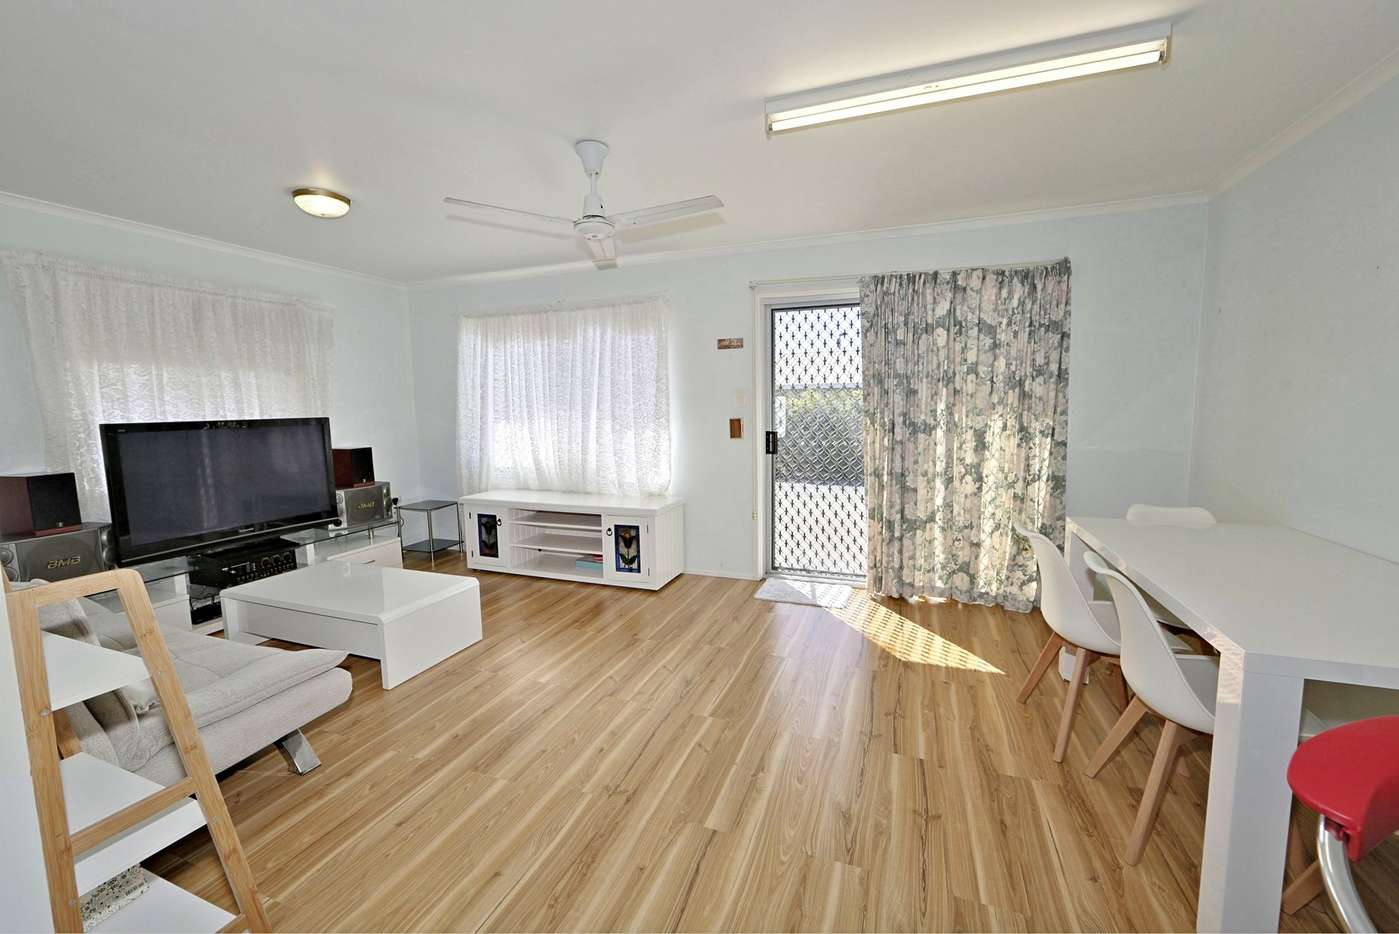 Main view of Homely unit listing, 1/66 Taylor Street, Pialba, QLD 4655